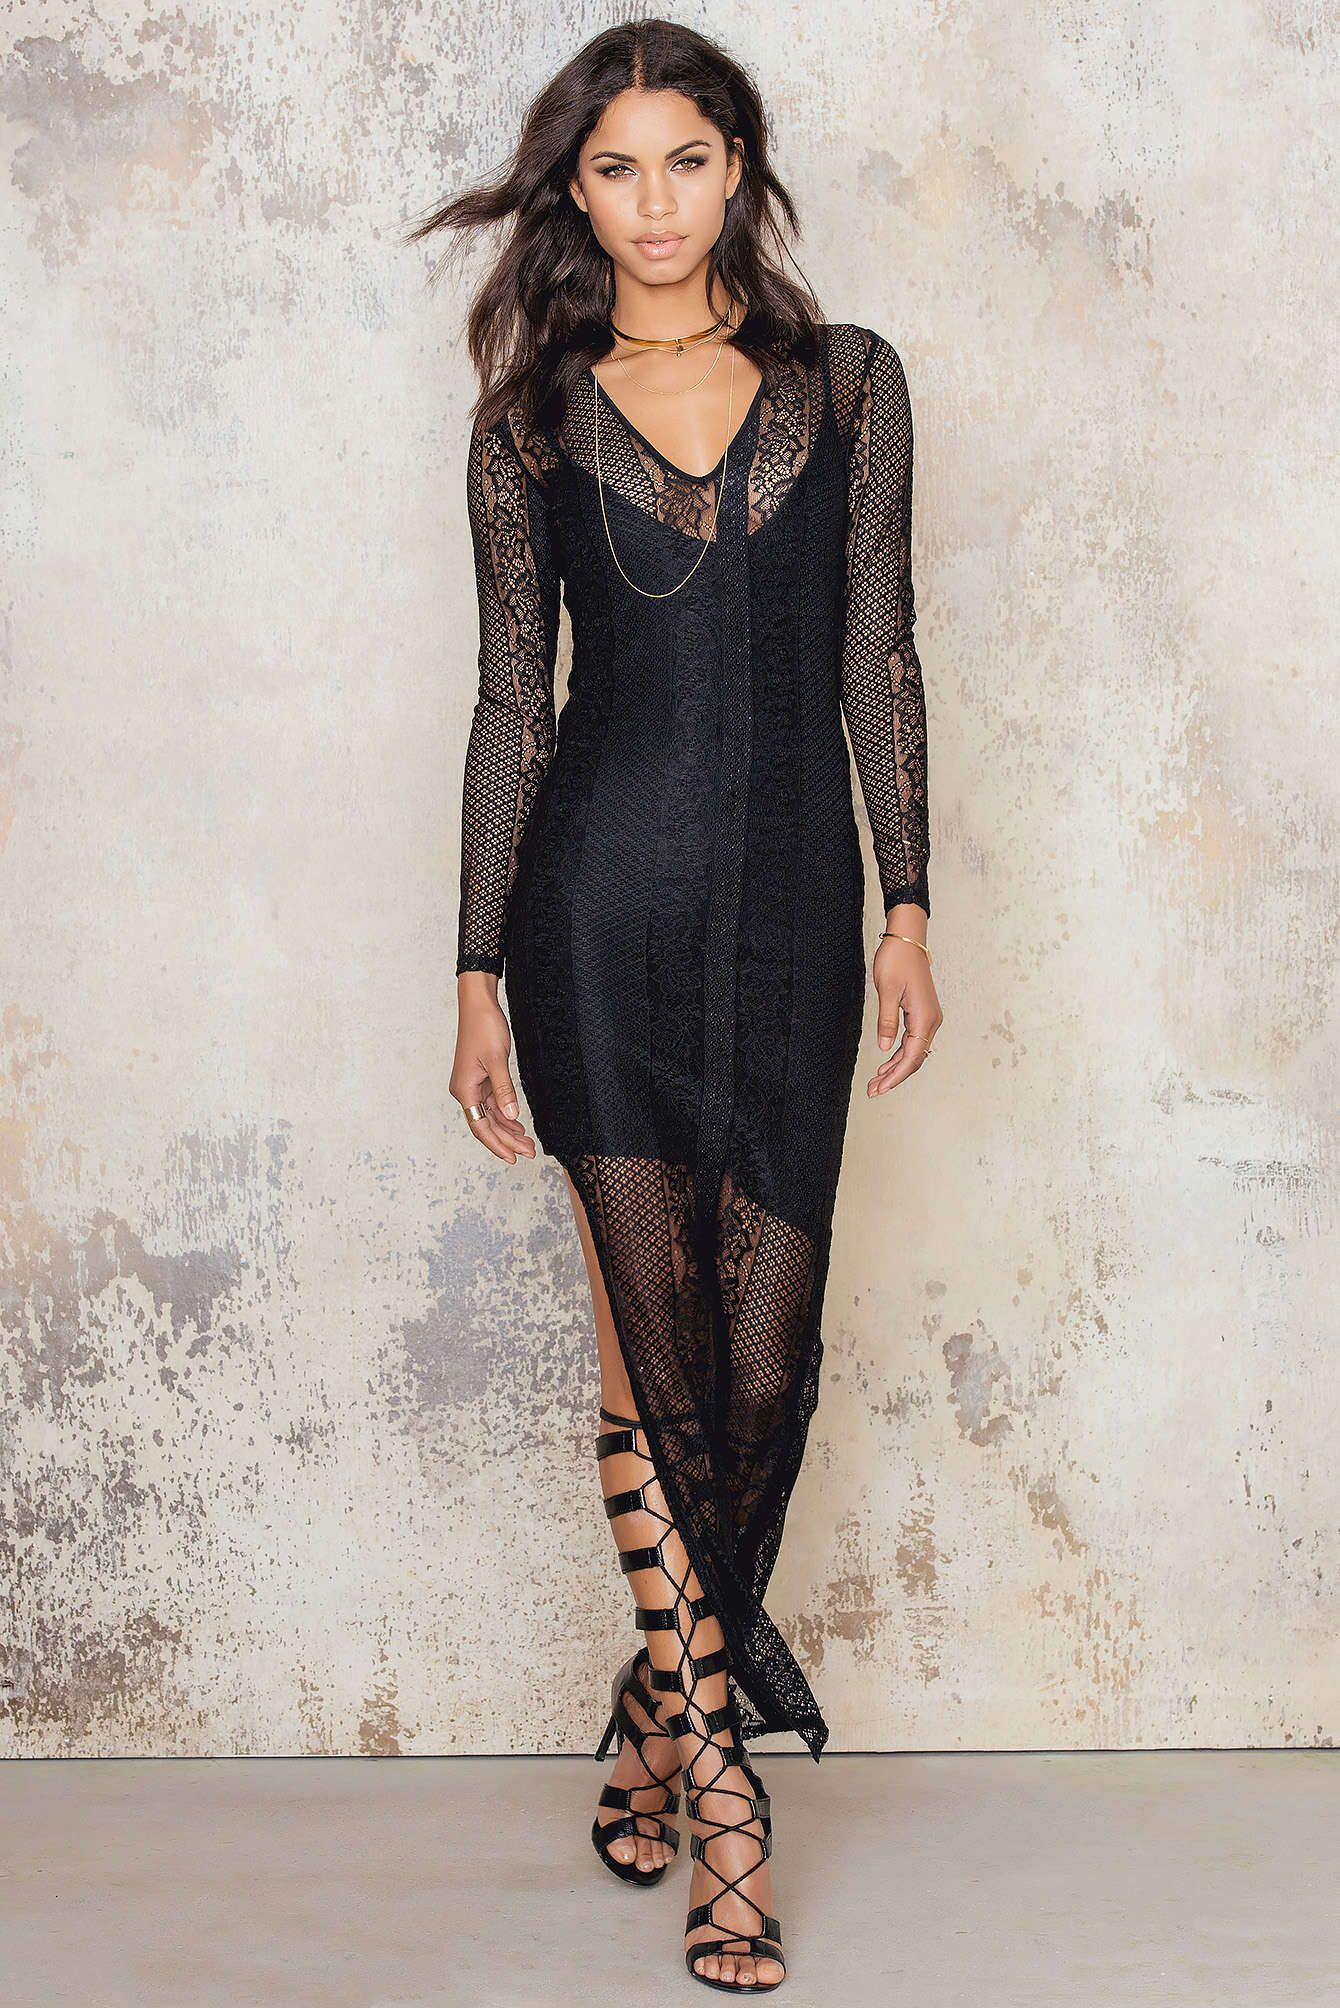 V neck black lace dress  Turn heads in this design by NAKD The Vneck Lace Dress is made in